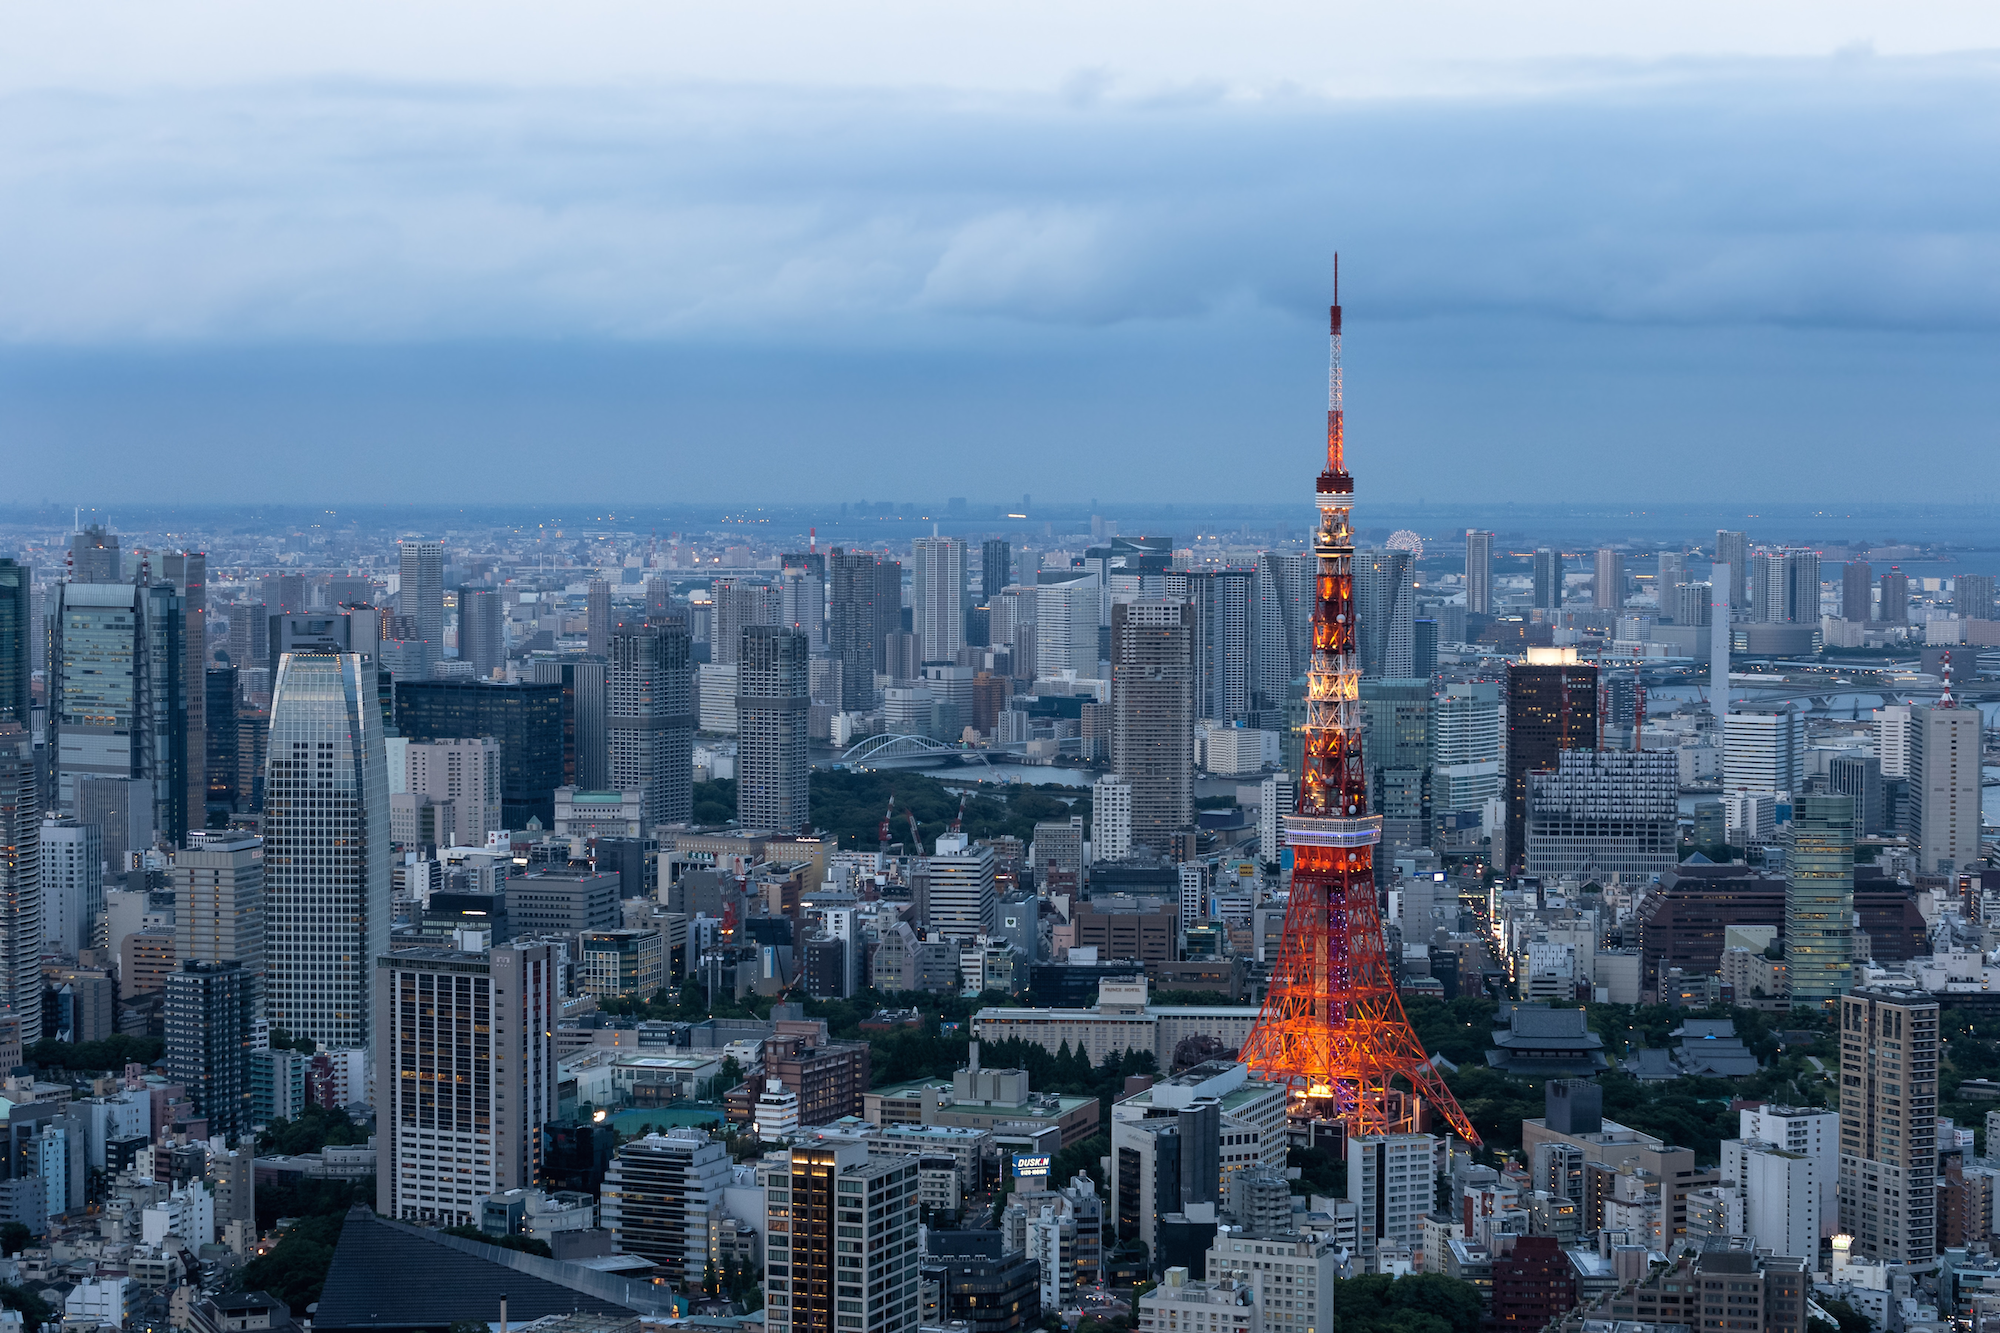 Tokyo is the seventh most liveable city in the world